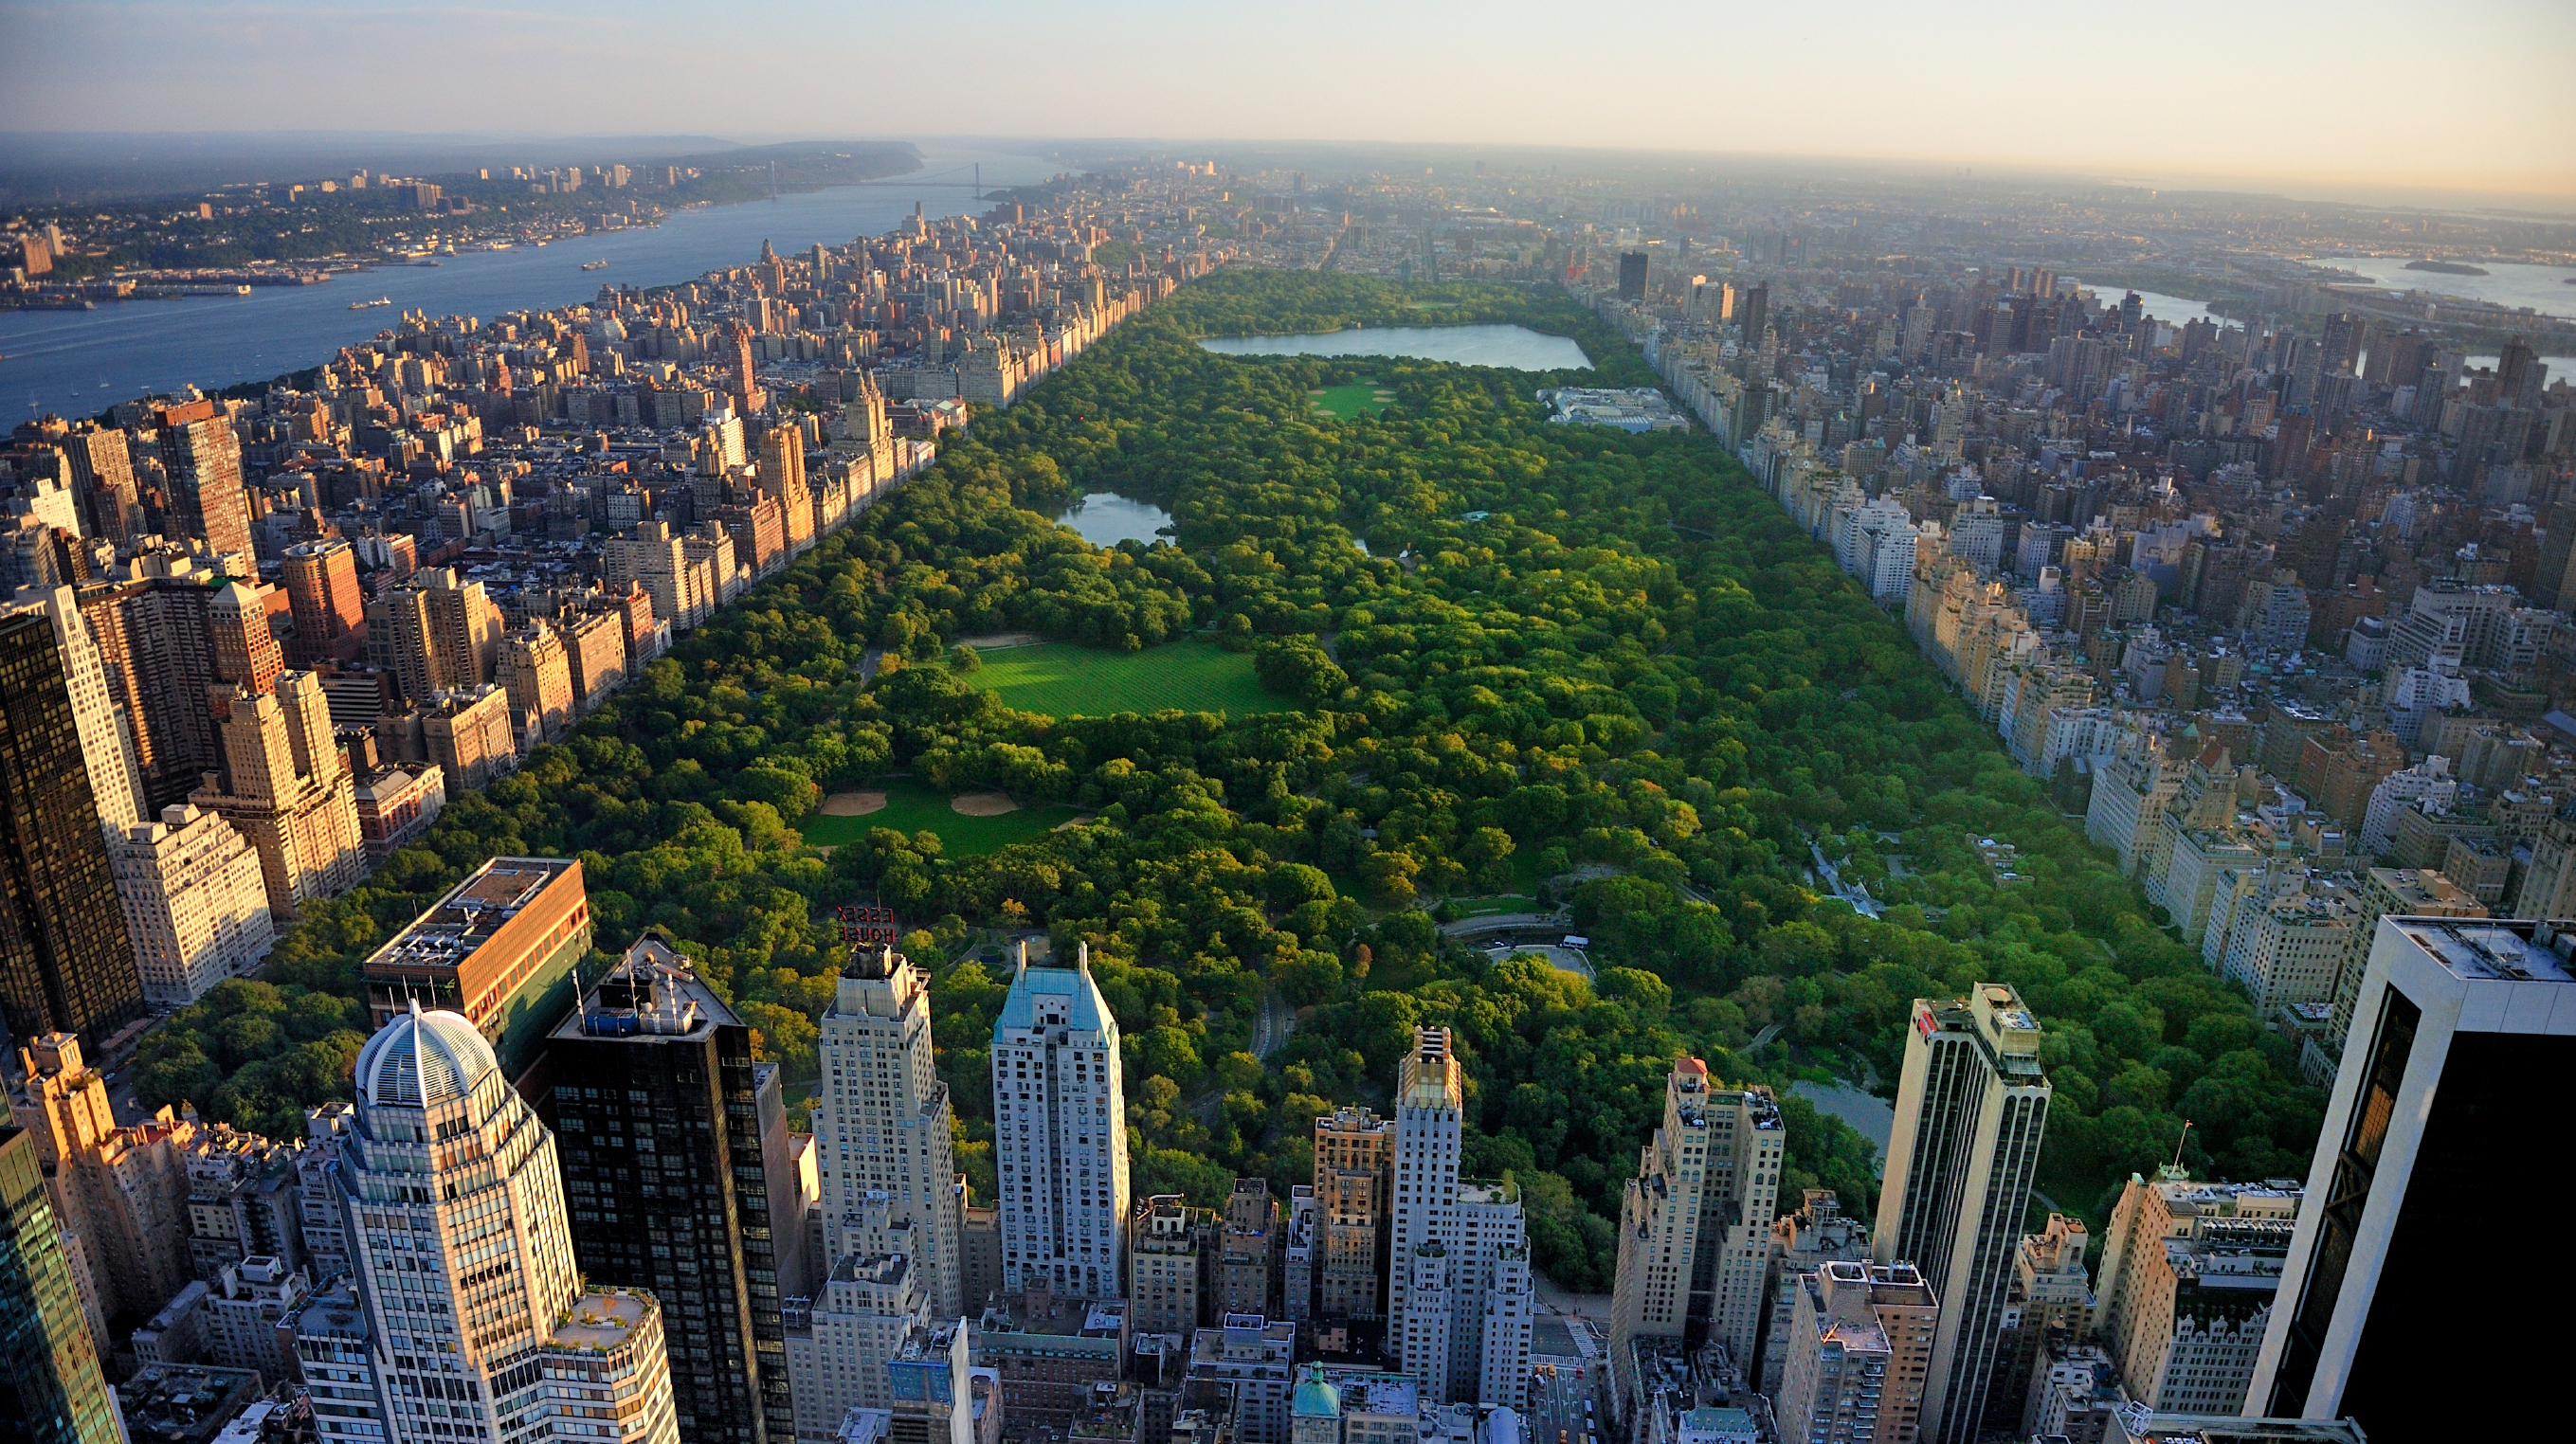 iStock_000053649264_Large.jpg www.istockphoto.com:photo:central-park-aerial-view-manhattan-new-york-gm528725265-53649264_st=fb17559